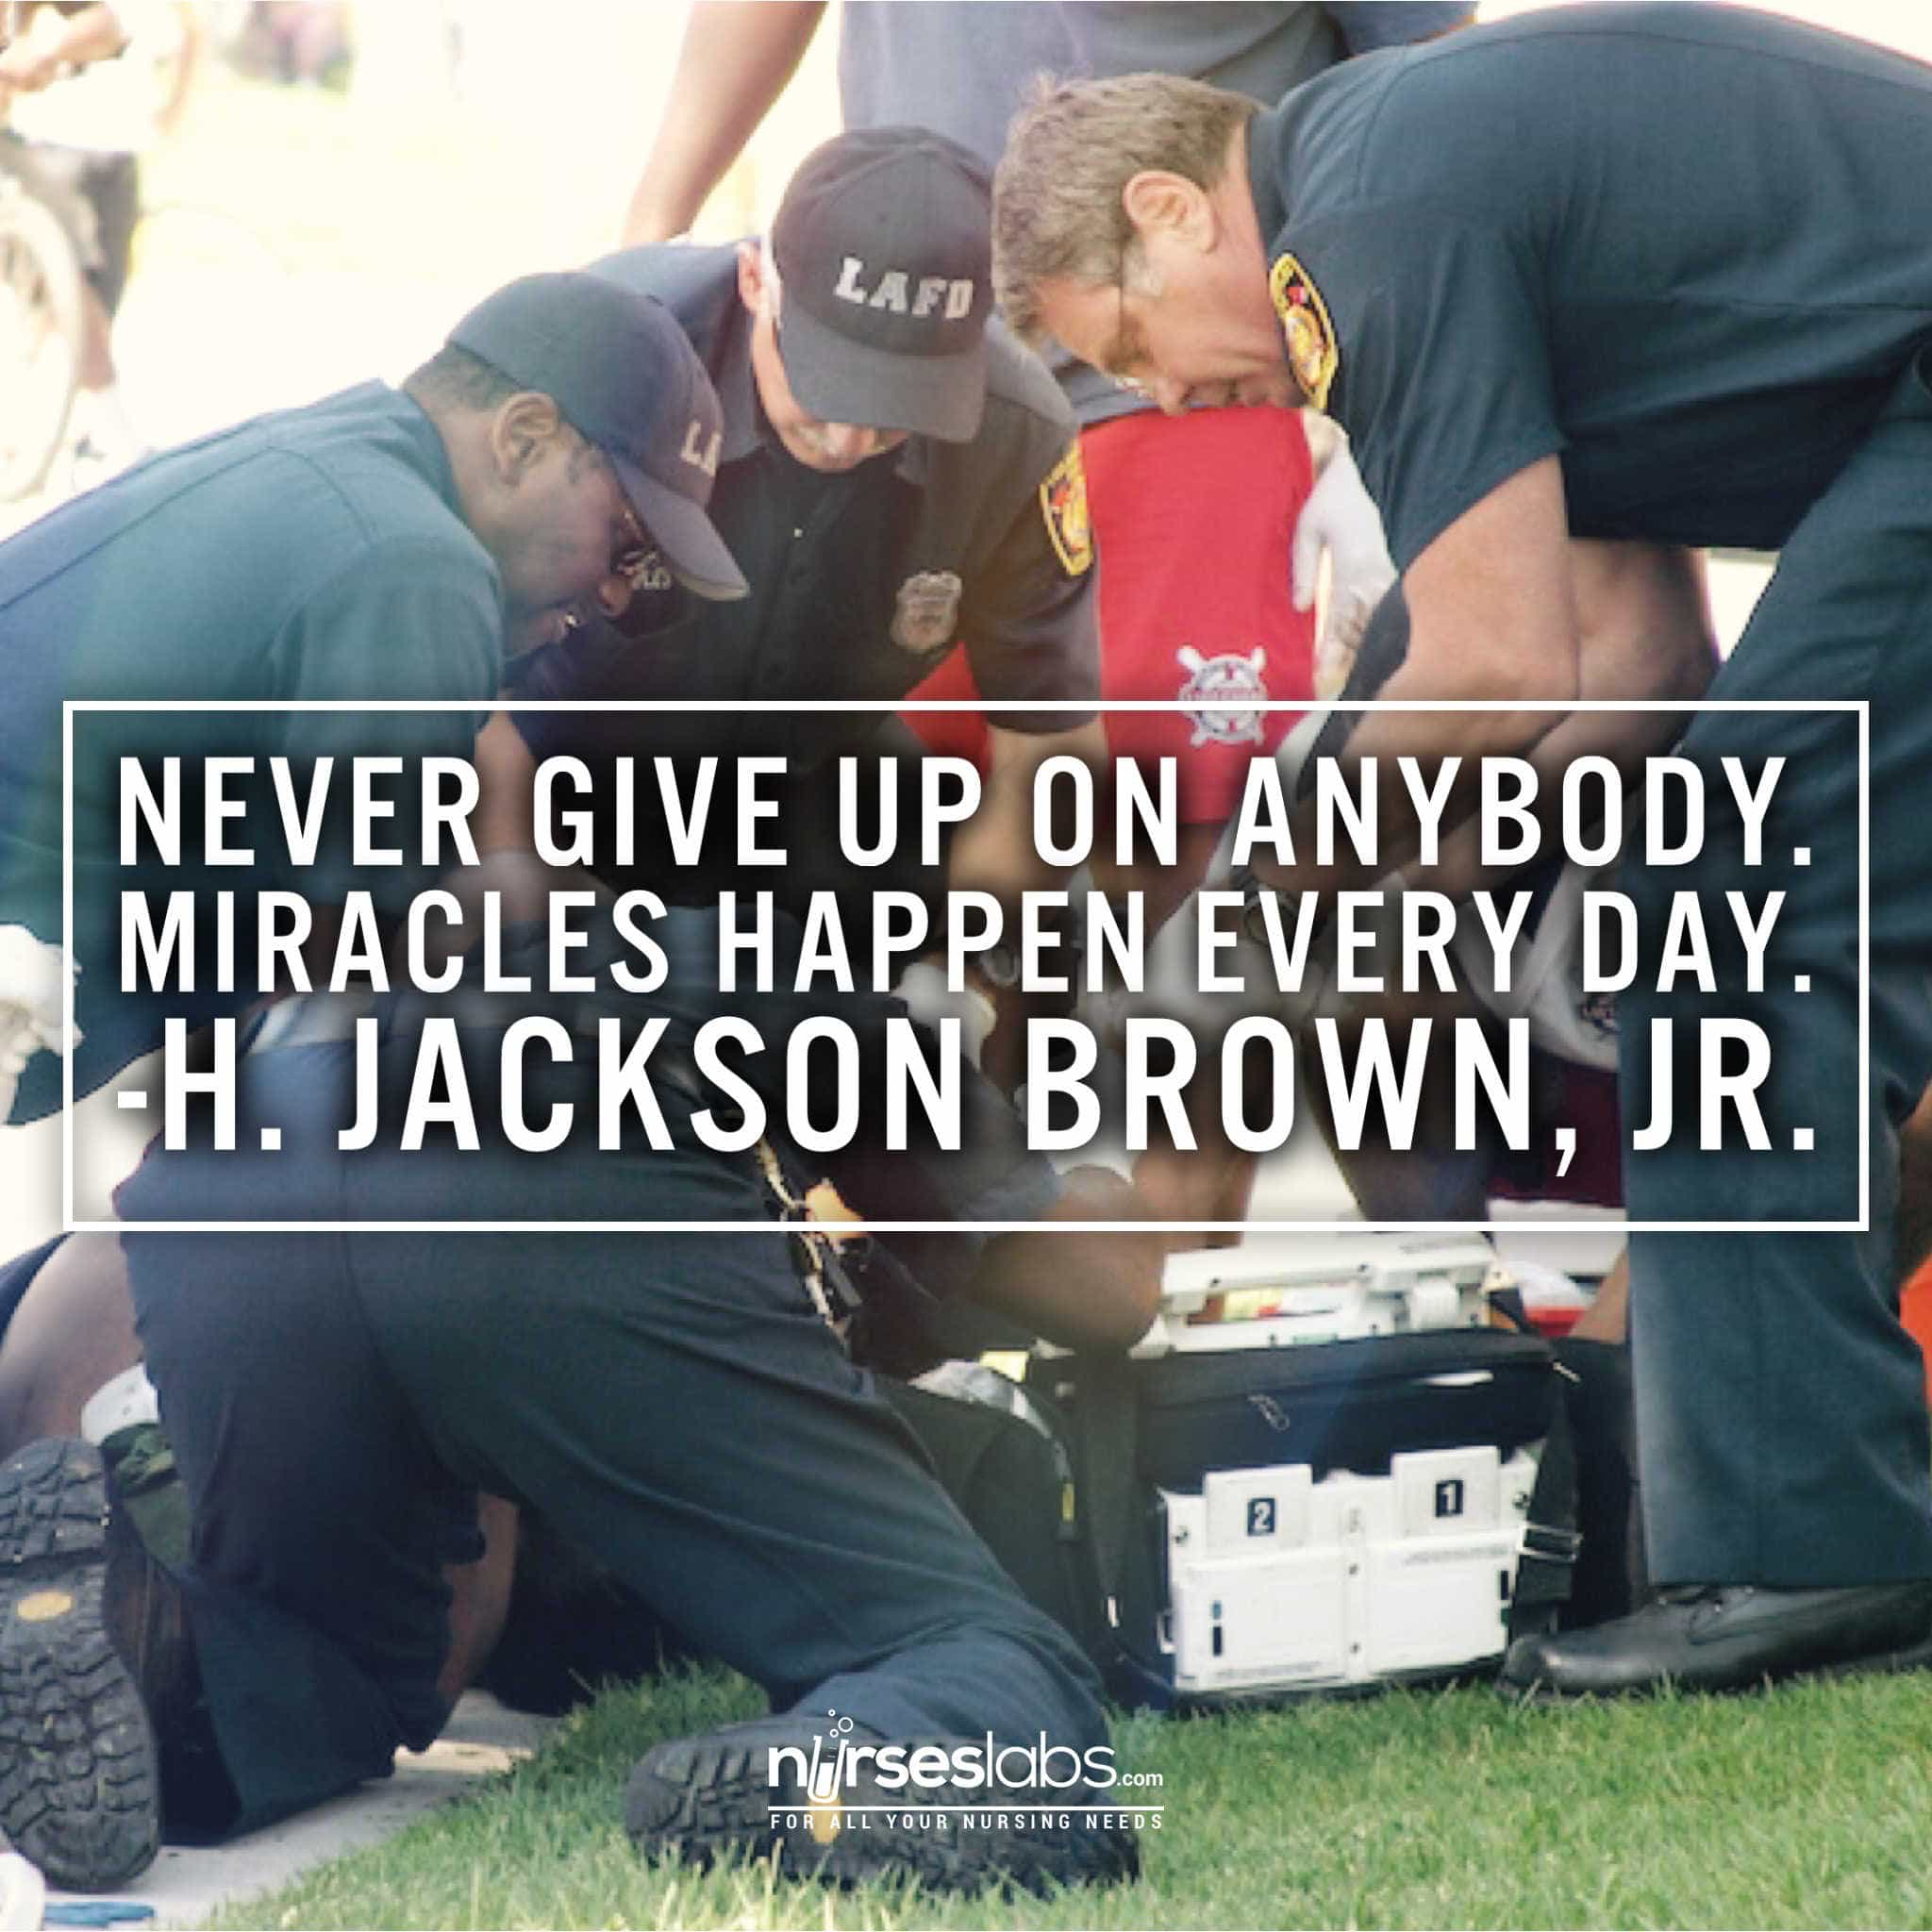 Never give up on anybody. Miracles happen every day. - H. Jackson Brown, Jr.